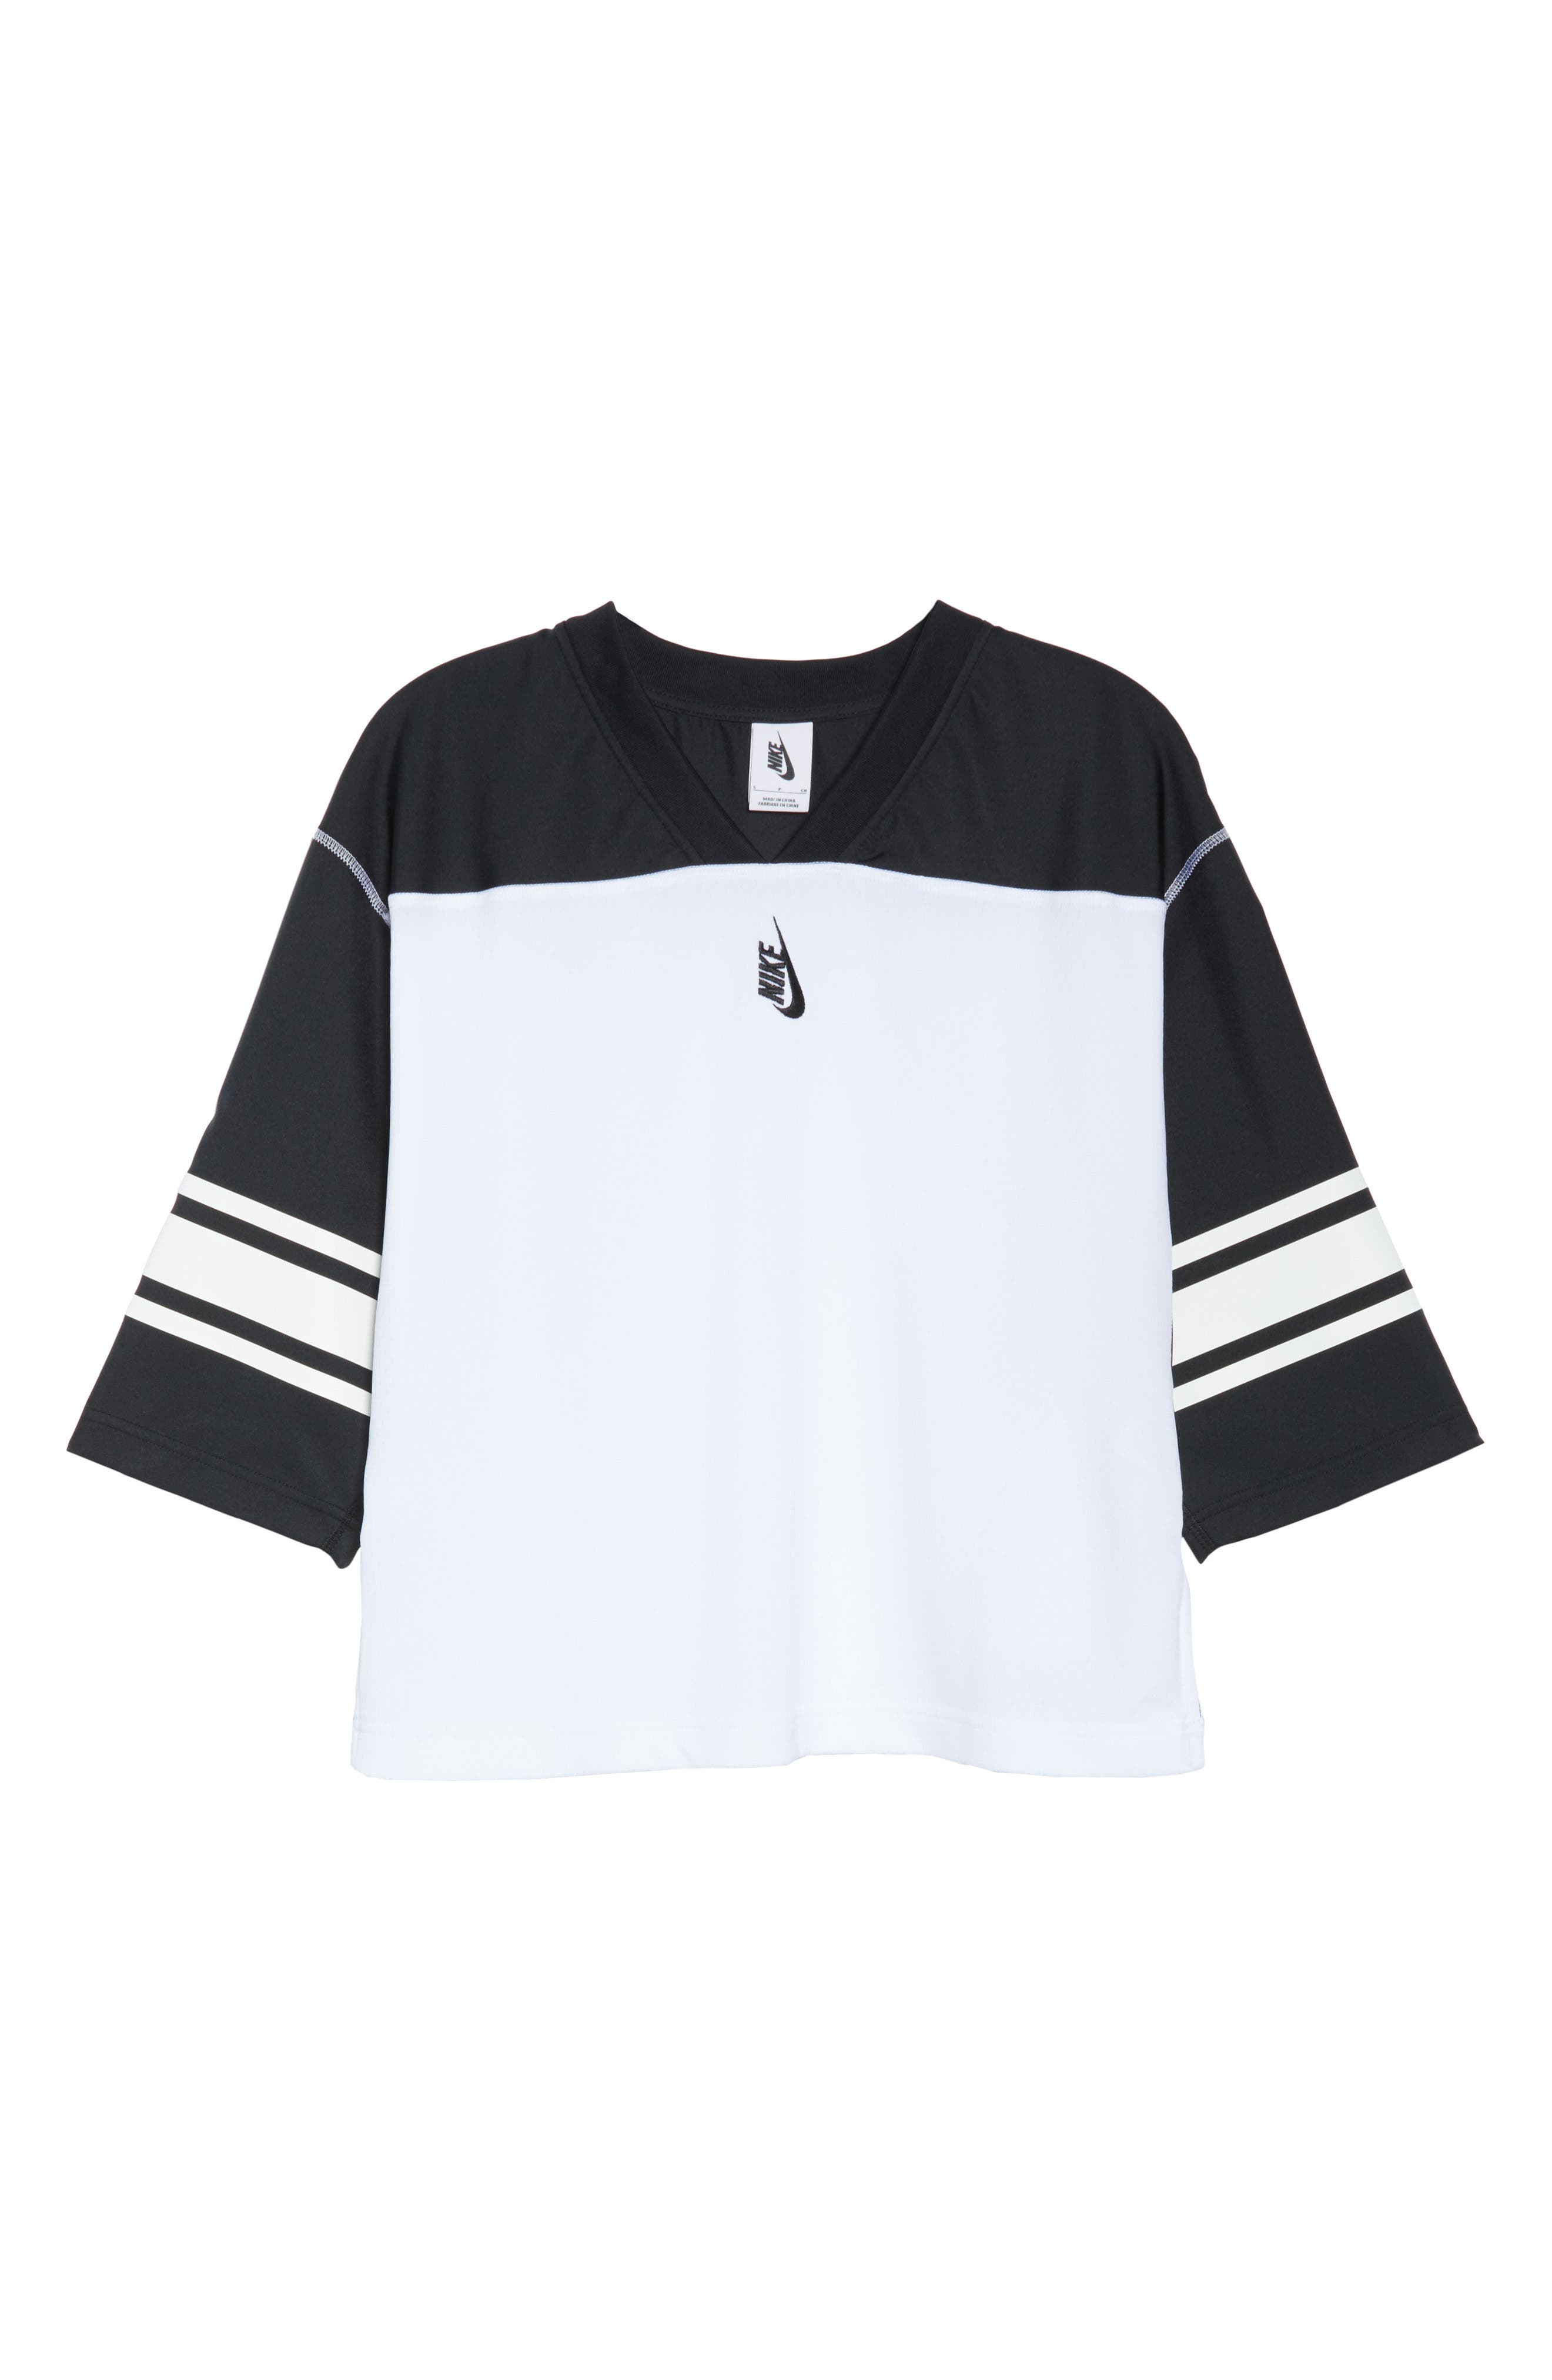 NikeLab Collection Football Top,                             Alternate thumbnail 7, color,                             BLACK/ WHITE/ BLACK